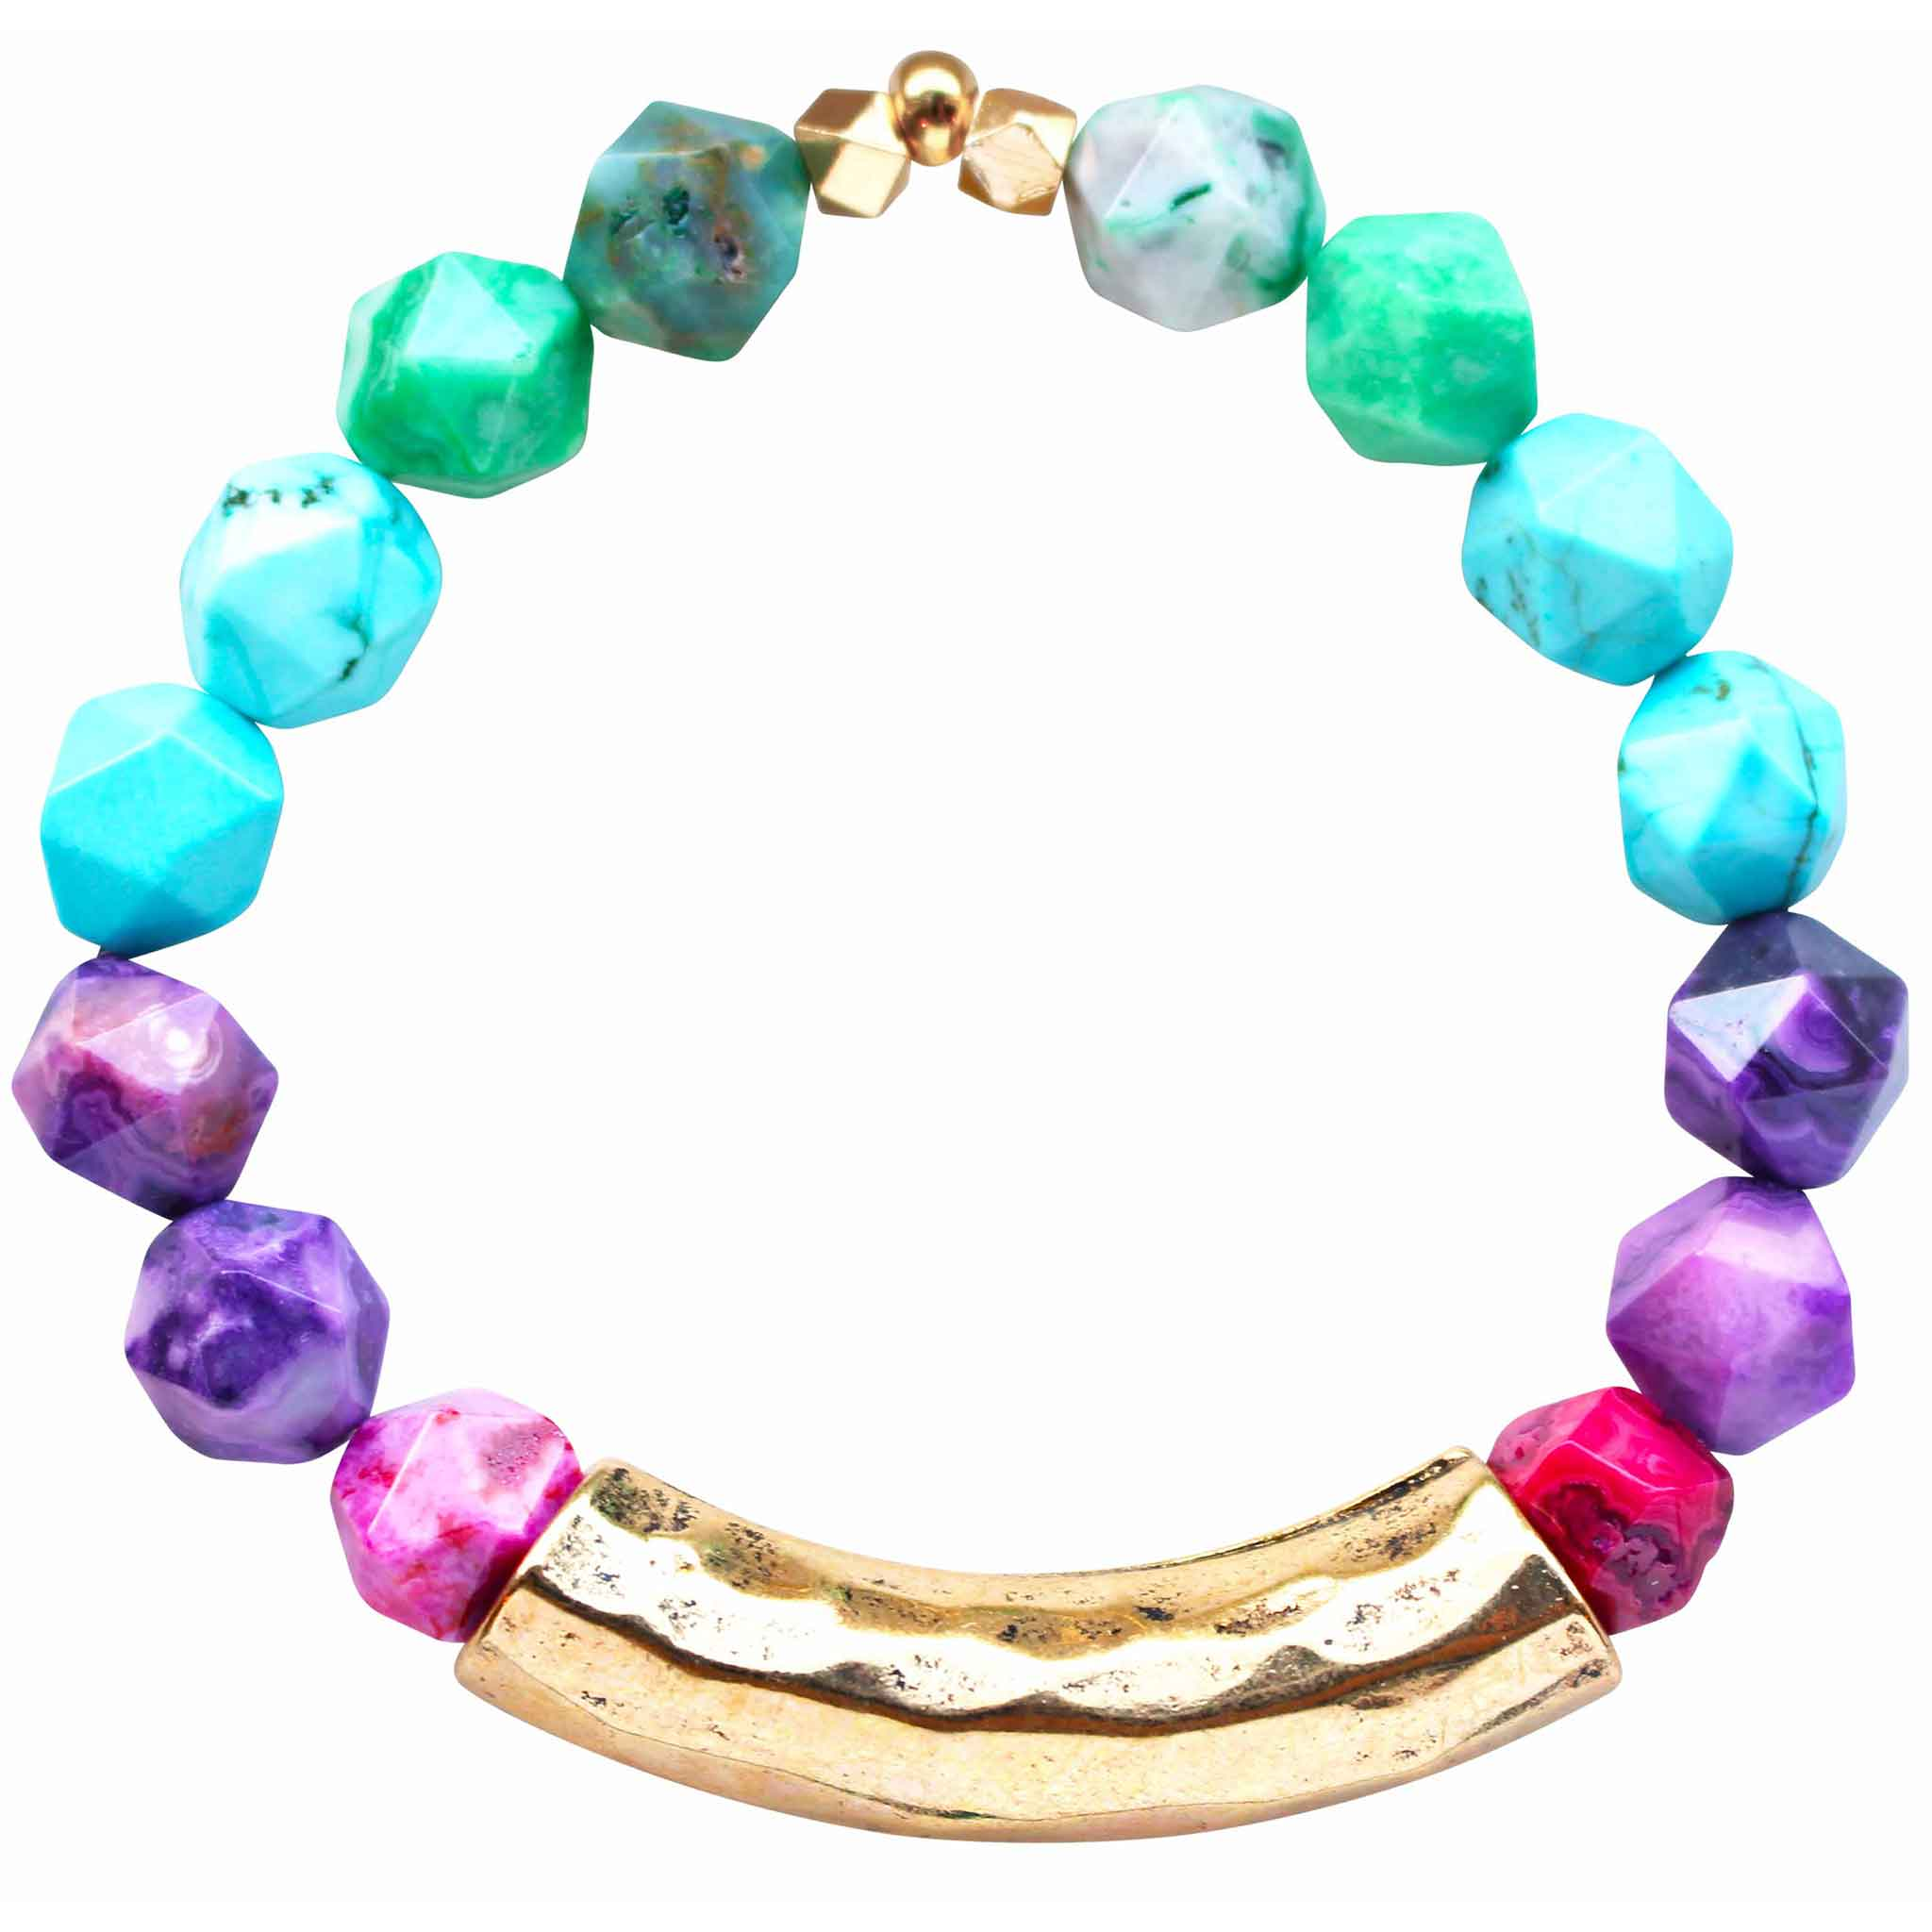 Beaded stretch bracelet with green agate, purple agate, pink agate, and turquoise beads and hammered gold plated bar